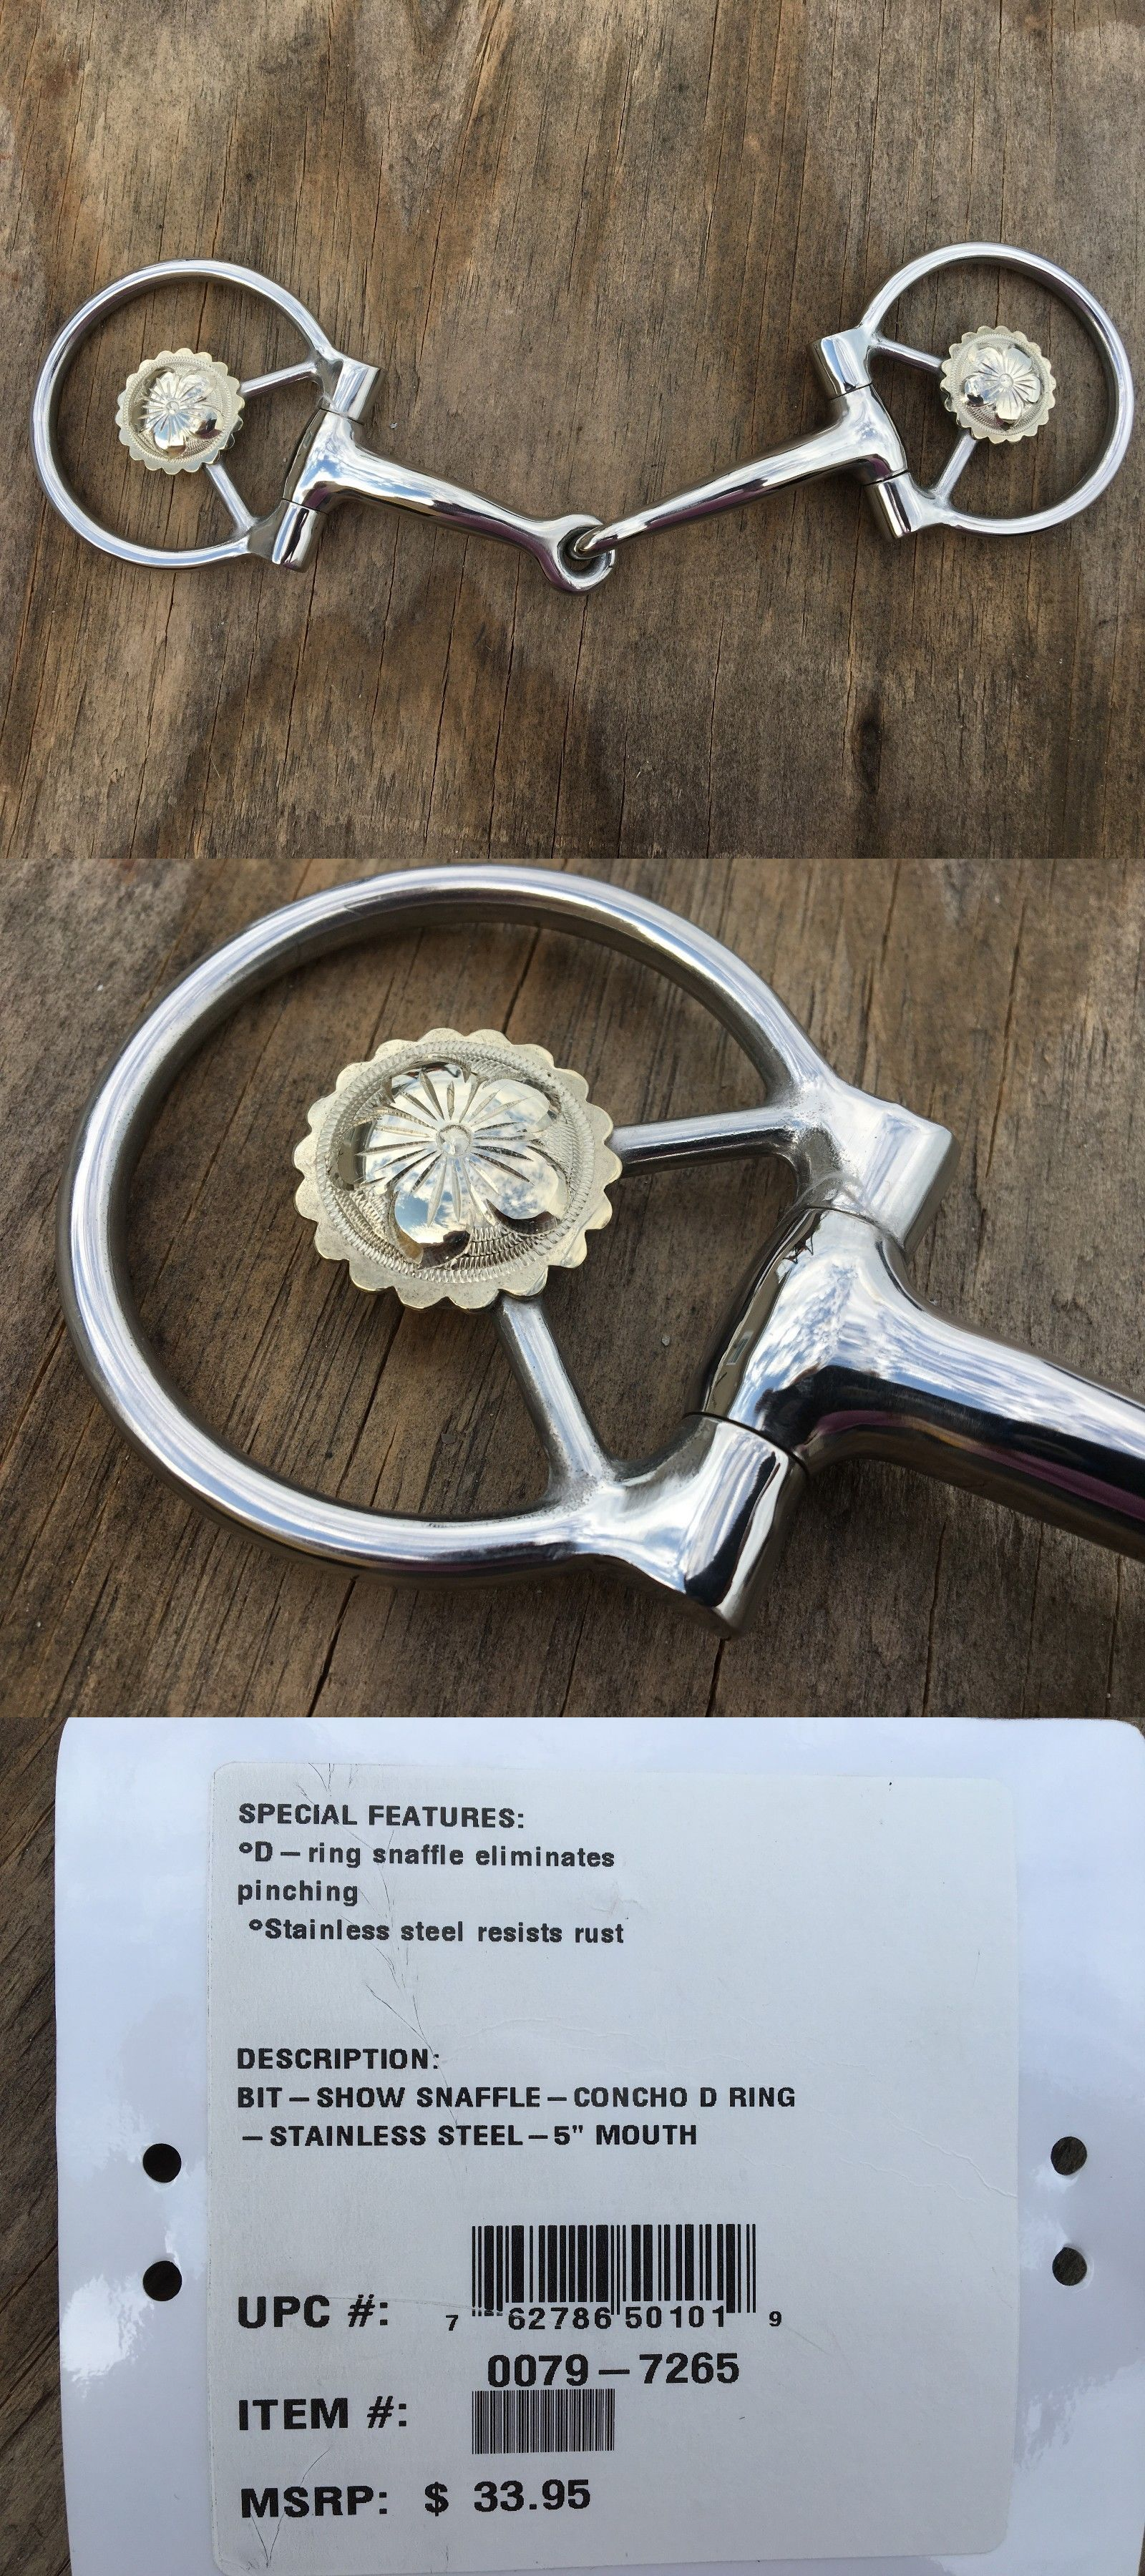 Bits 16244 Circle Y Western Offset Dee Show Snaffle Bit W Conchos Stainless Steel Buy It Now Only 22 On Ebay C Conchos Silver Engraving Silver Bracelet